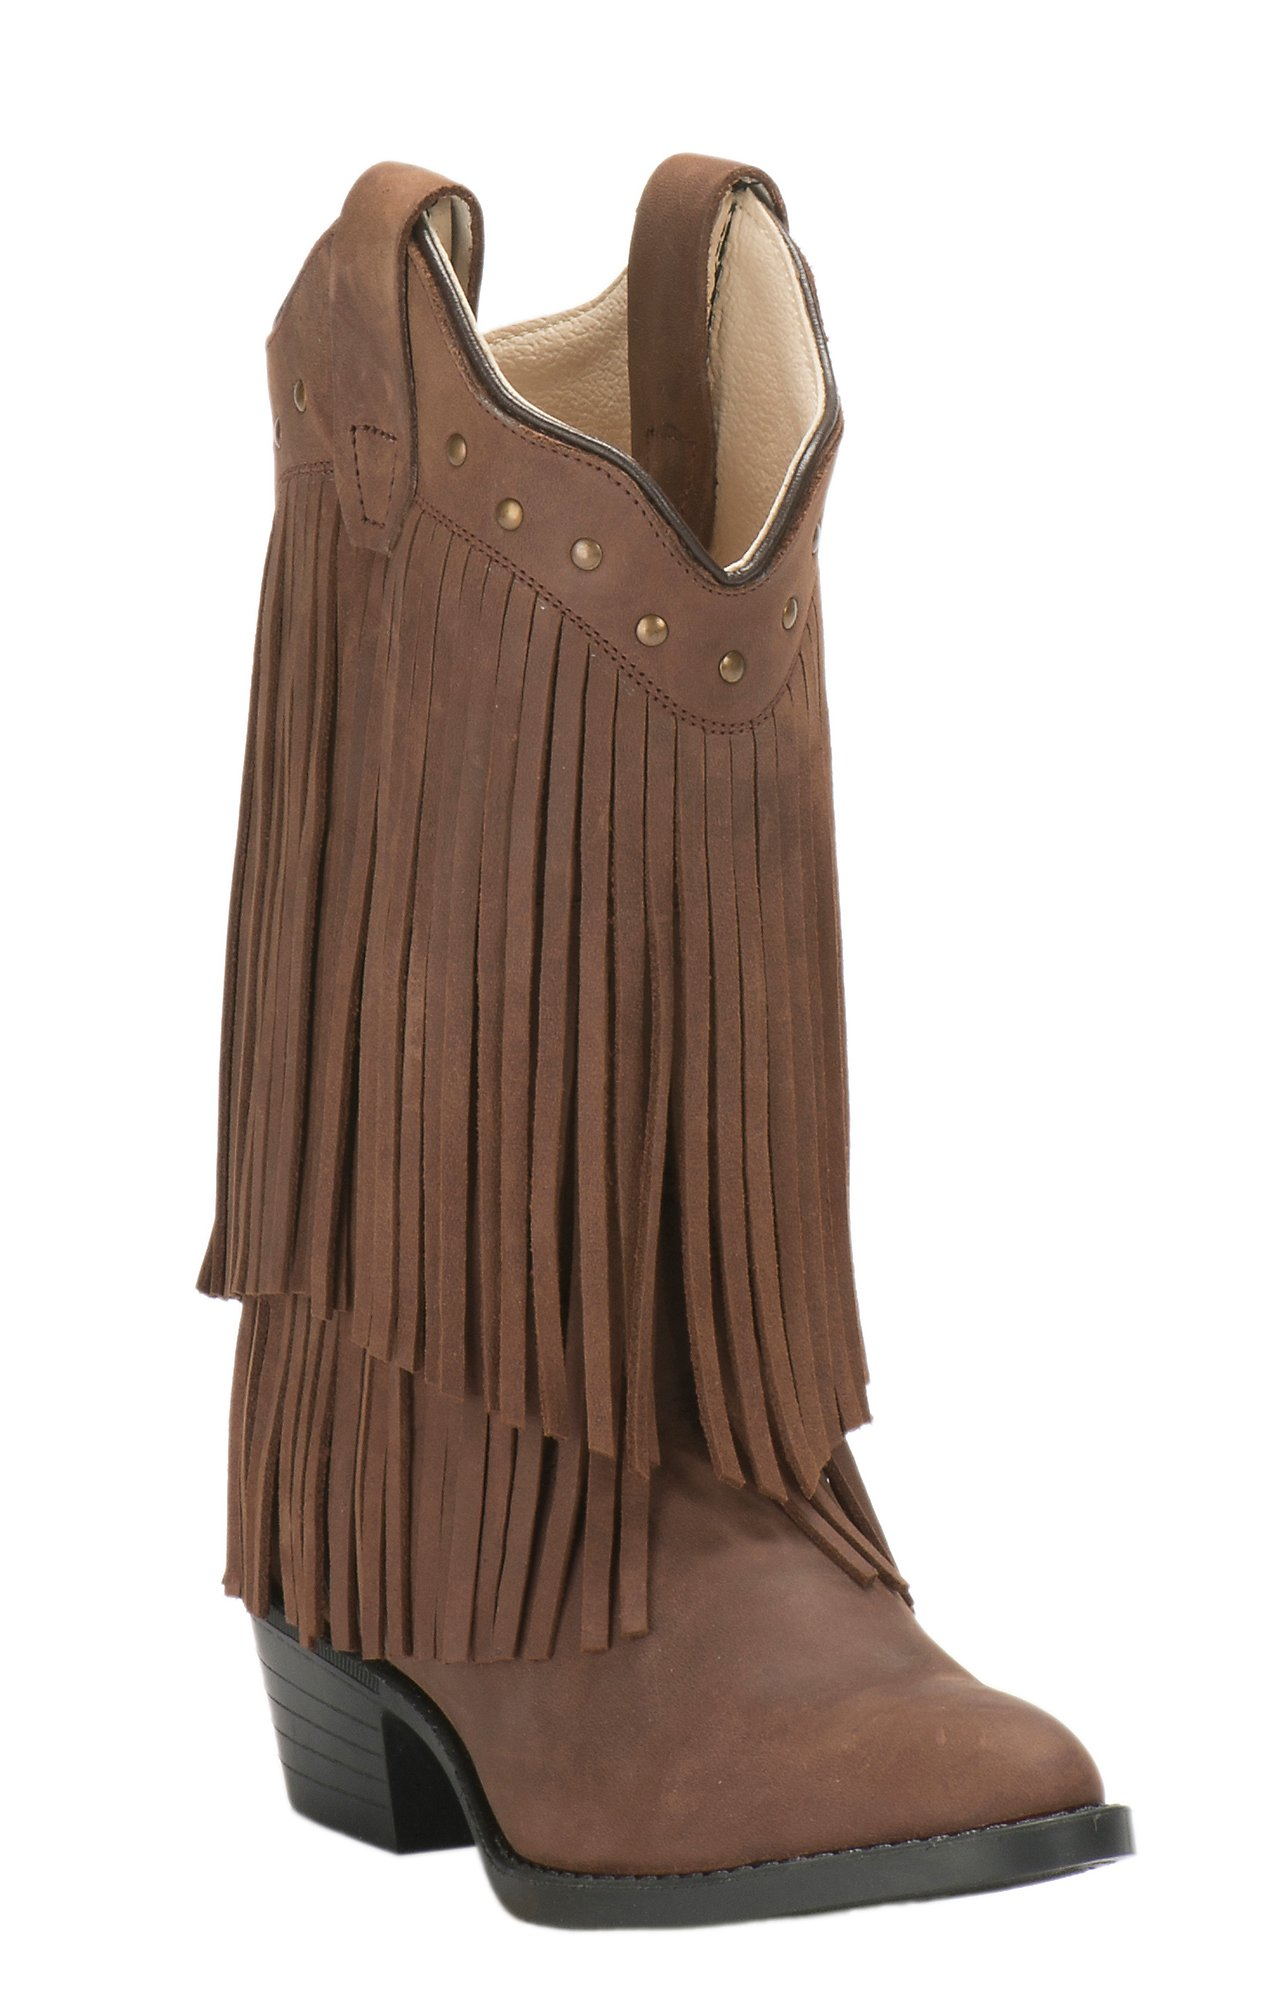 Old West Jama Youth Corona Calf Brown with Fringe Traditional Toe Western  Boots 565d50fbff2